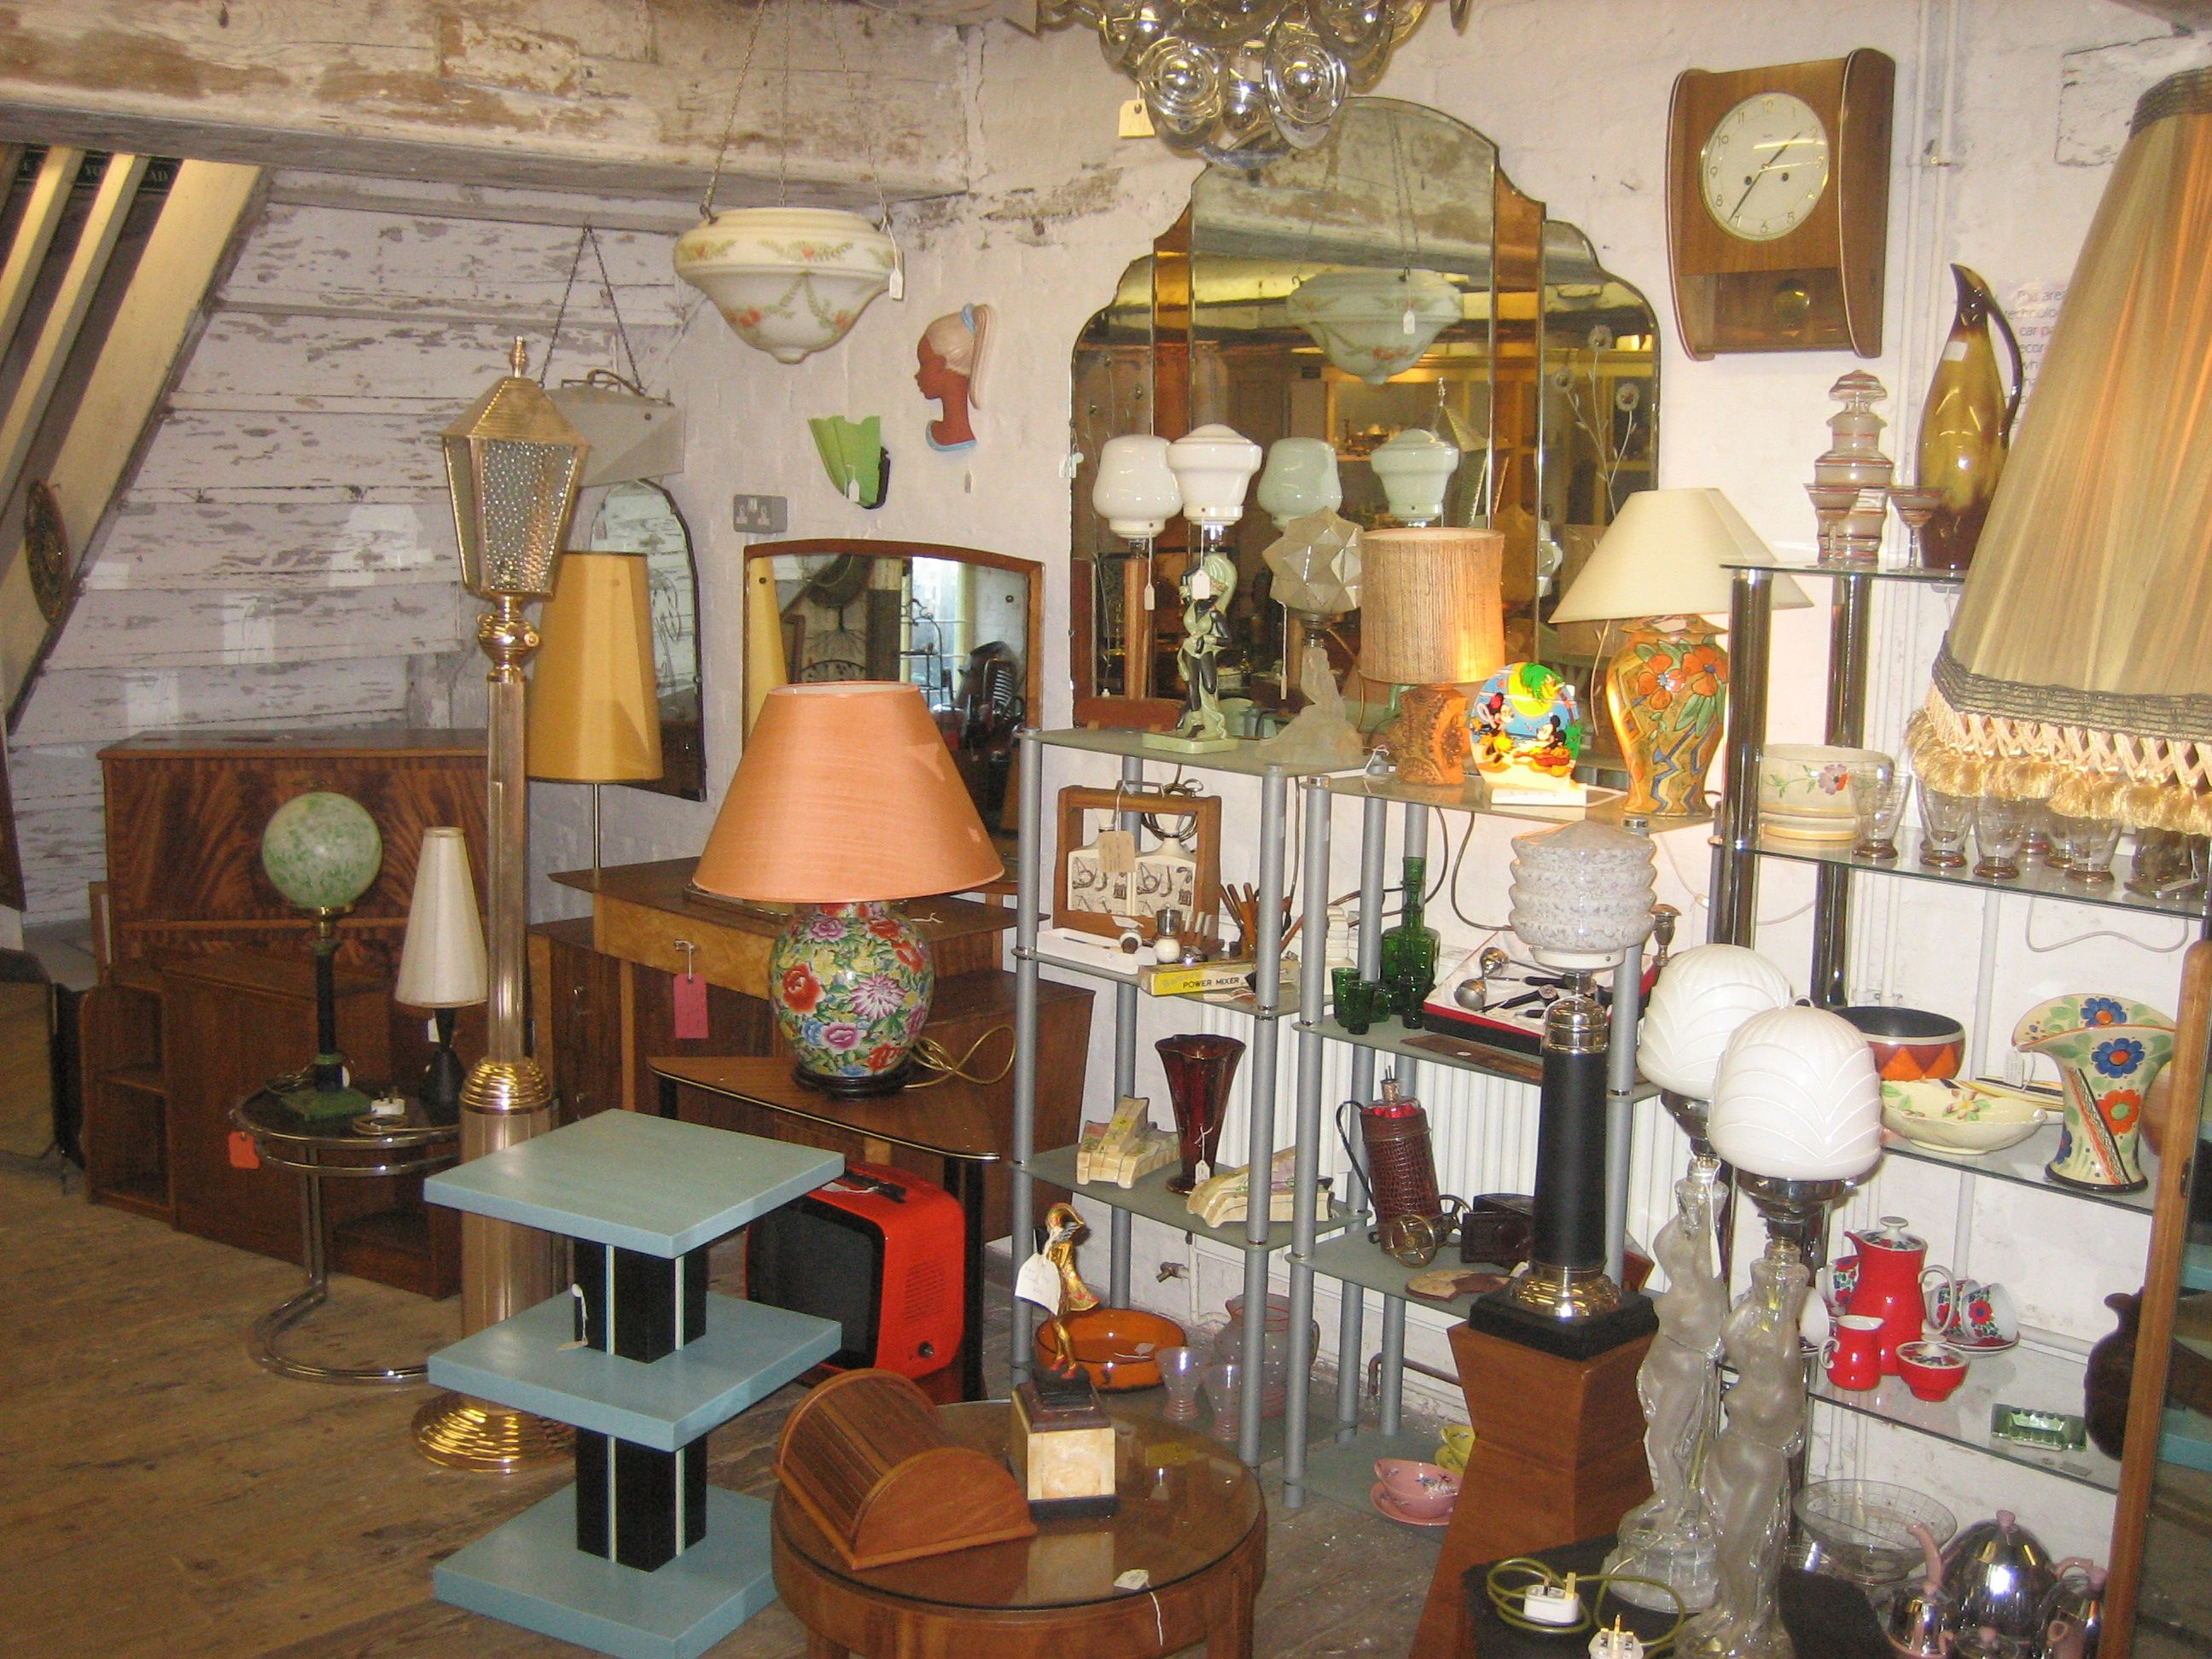 A Treasure Trove Of Vintage Treats At Chesapeake Mill In Wickham Vintchester Vintage Shopping Visitwinchester Winchester Chesapeake Vintage Shops Design